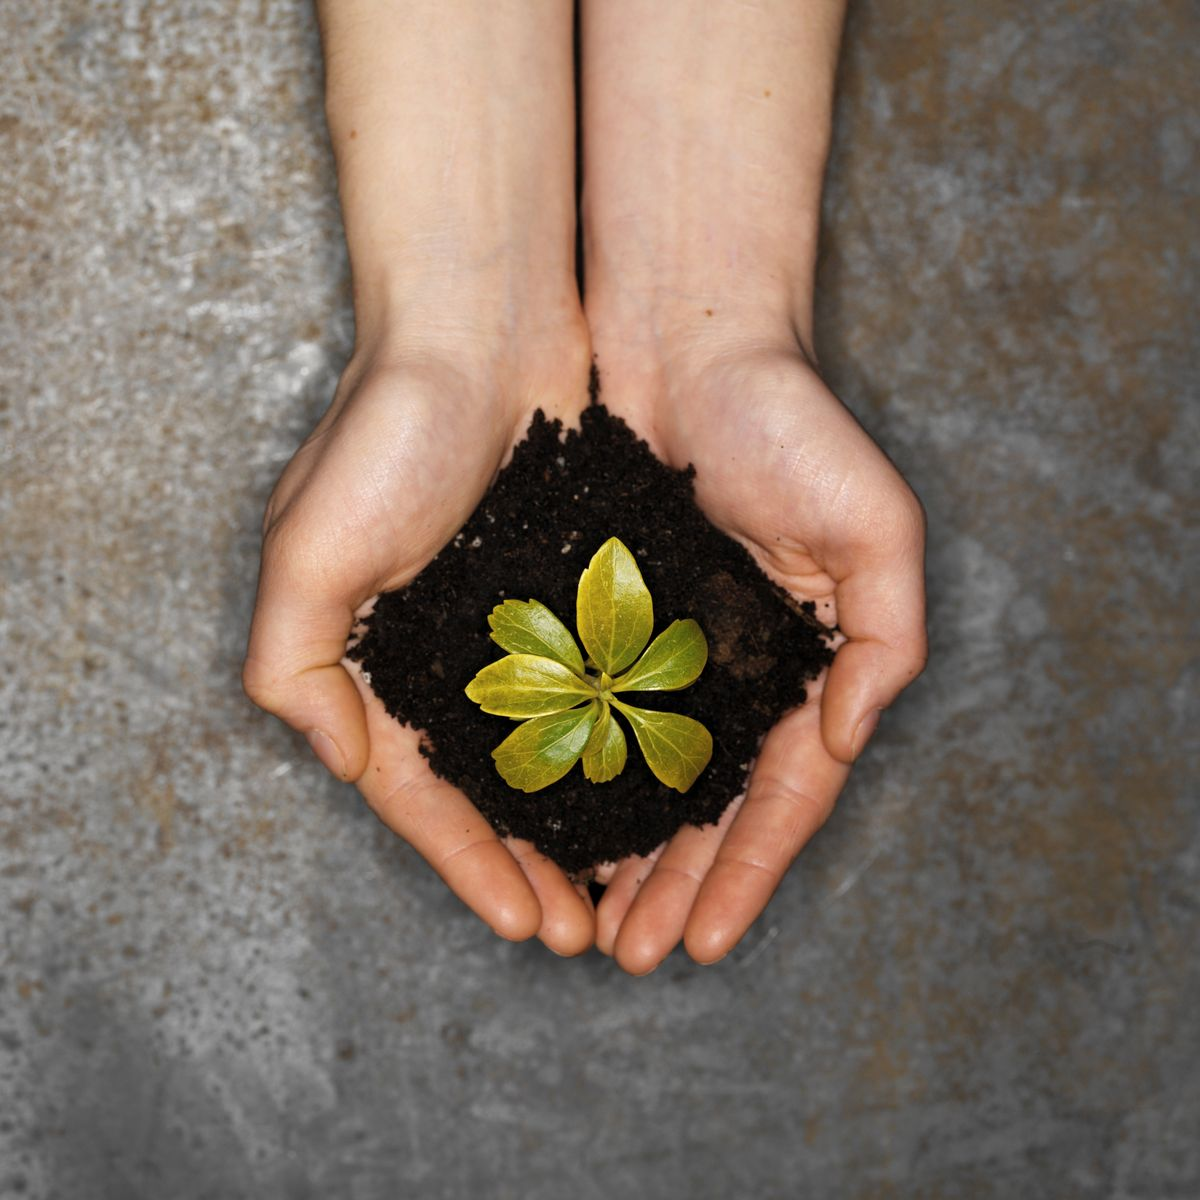 Elevated view of human hands holding sapling